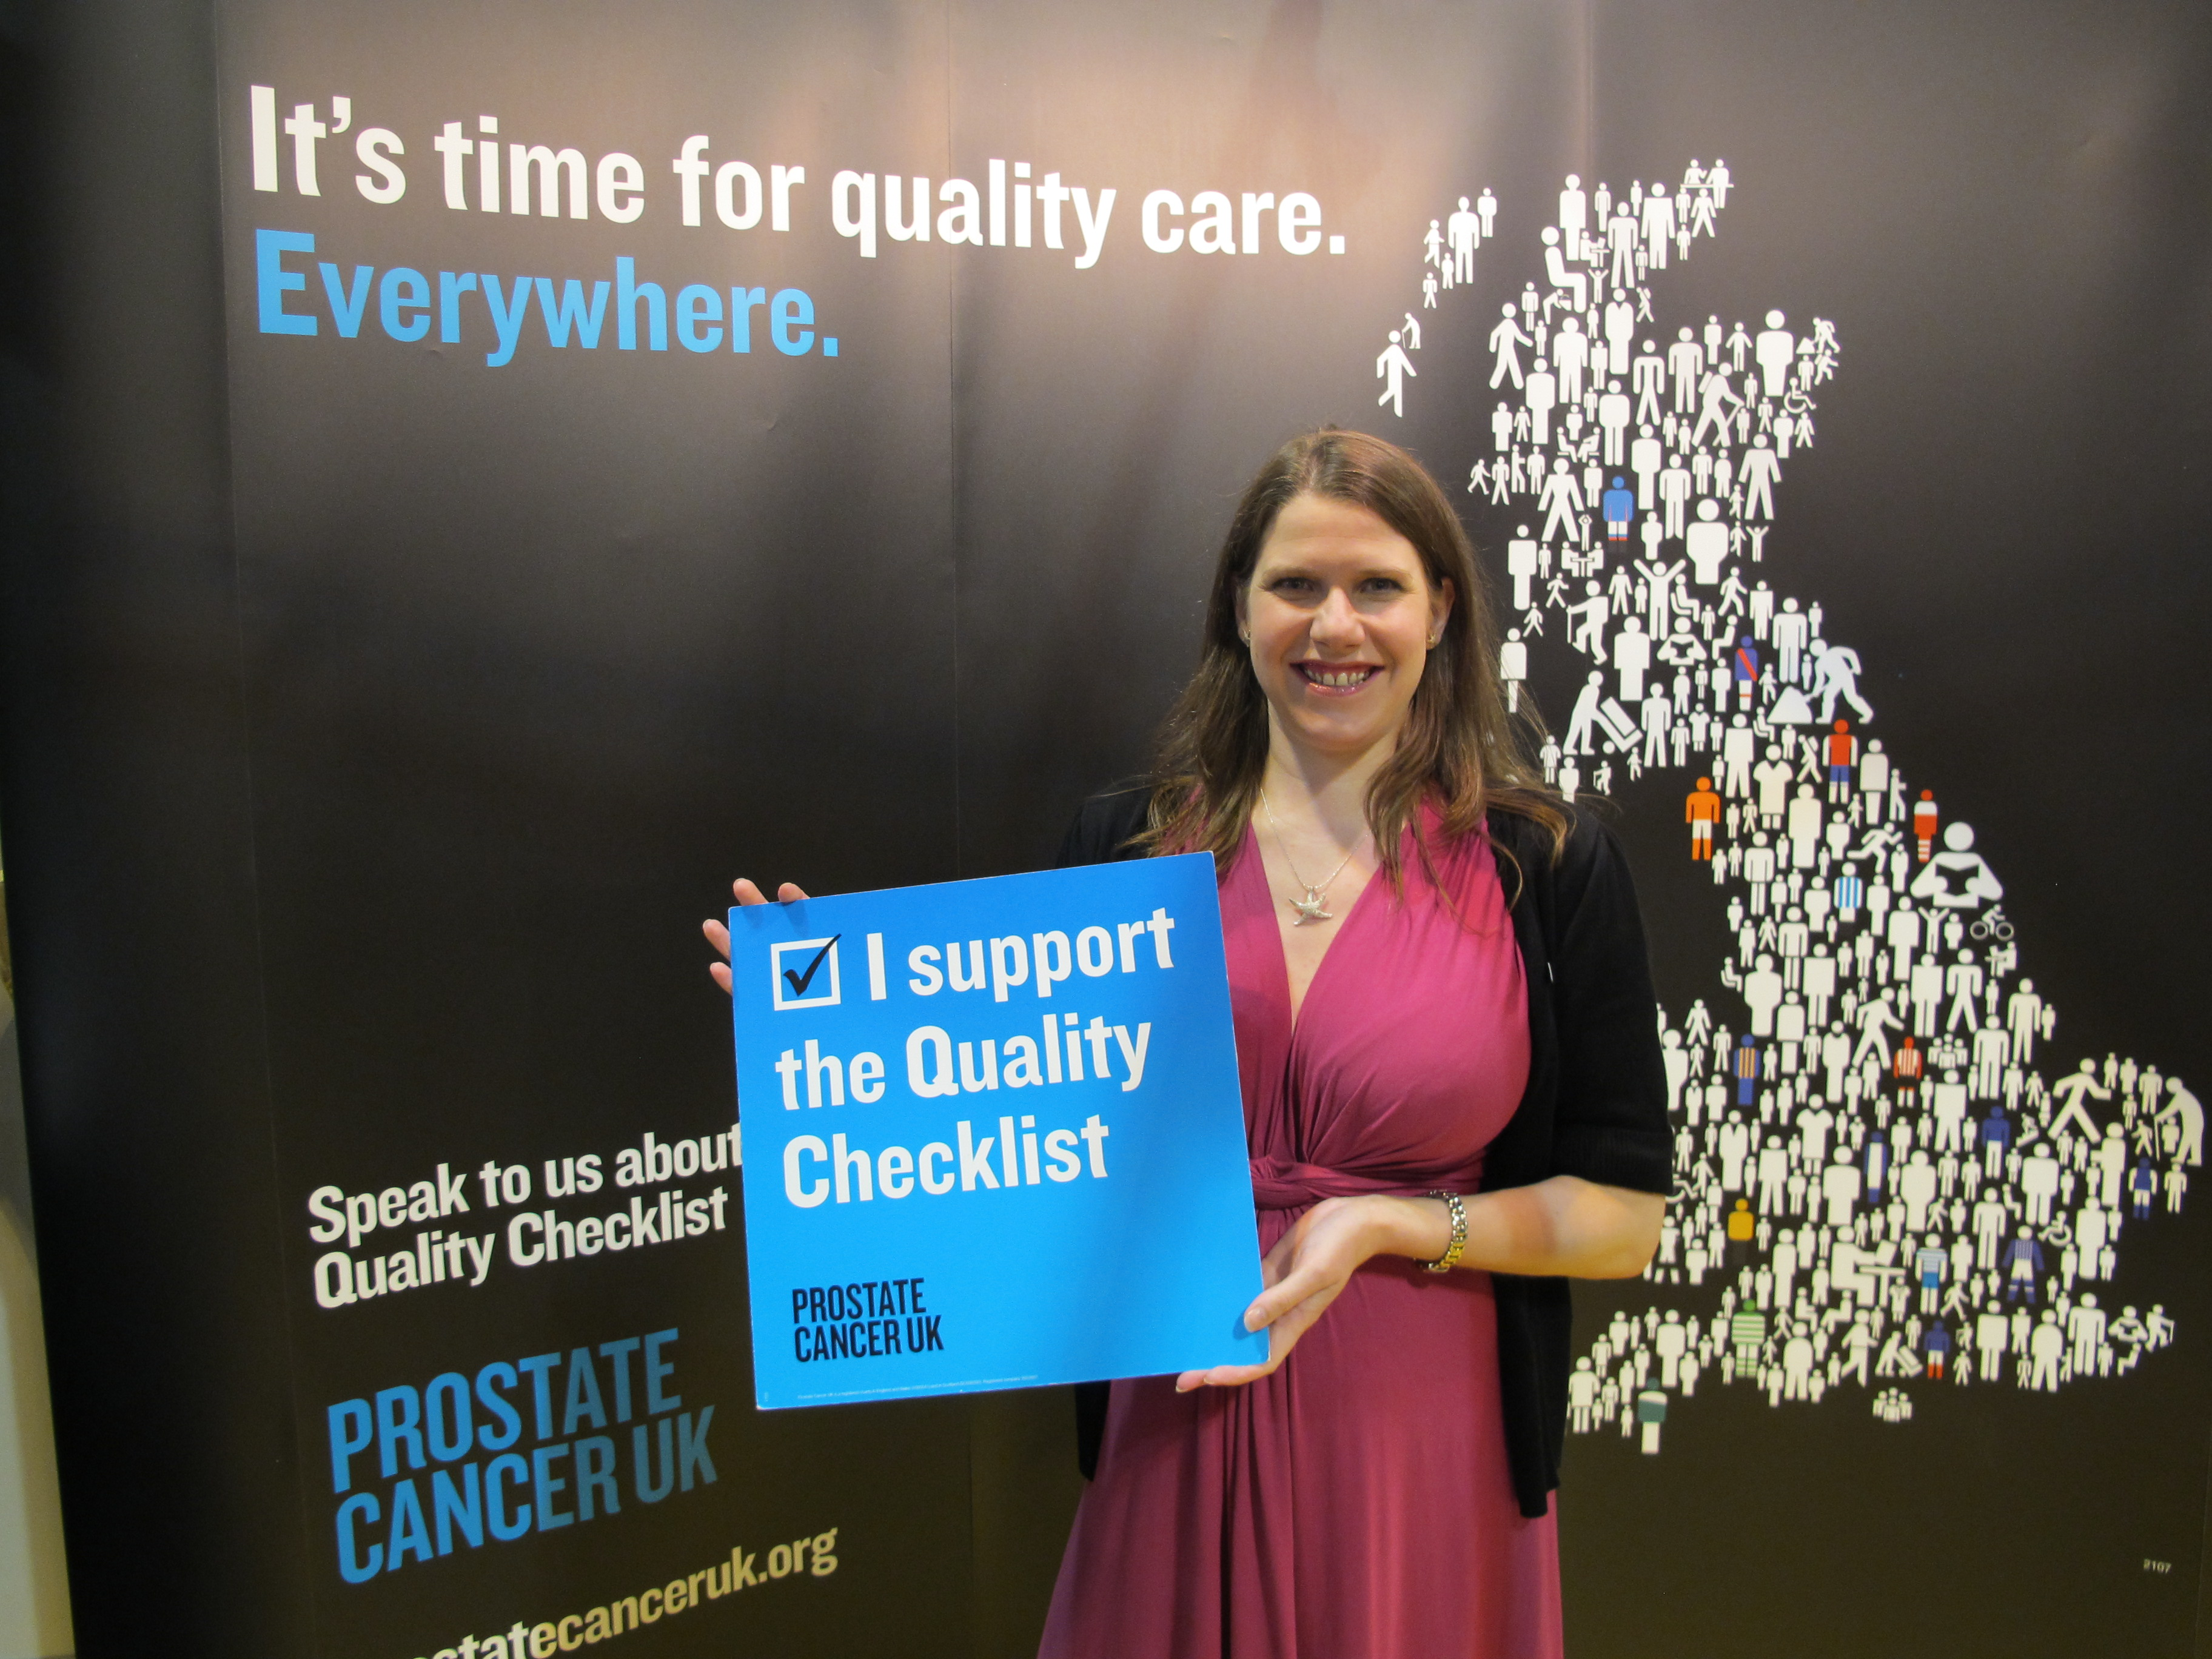 2013-09-20_Jo_Swinson_MP_supports_Prostate_Cancer_UKs_Quality_Checklist.JPG